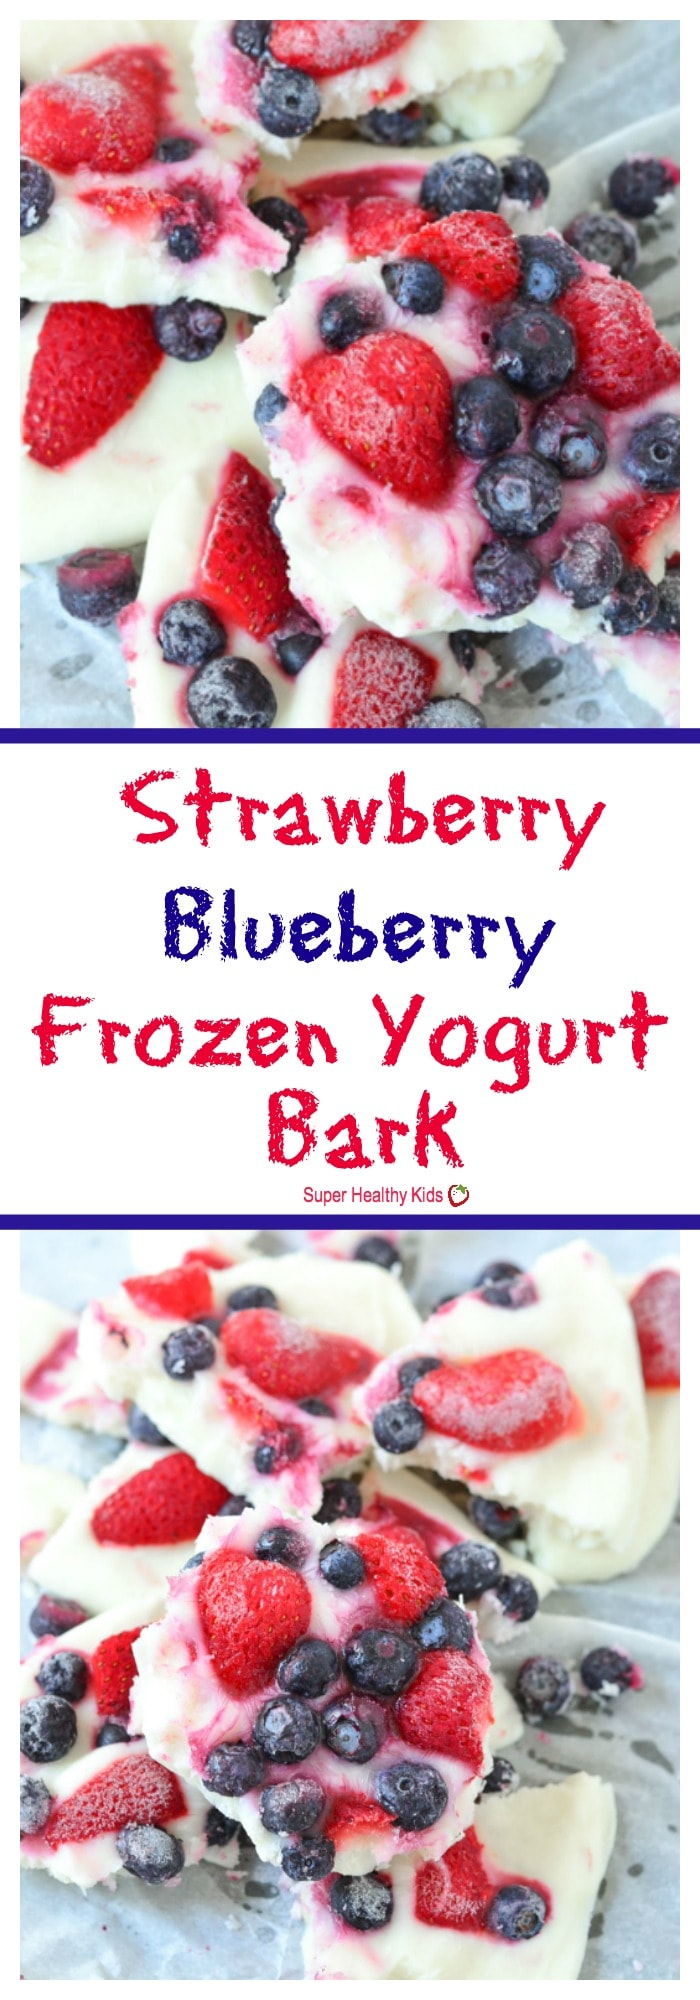 FOOD - Strawberry Blueberry Frozen Yogurt Bark. A healthy and refreshing frozen treat for summer. Super easy to make, and a great thing to have in your freezer for an afternoon snack. https://www.superhealthykids.com/strawberry-blueberry-frozen-yogurt-bark/